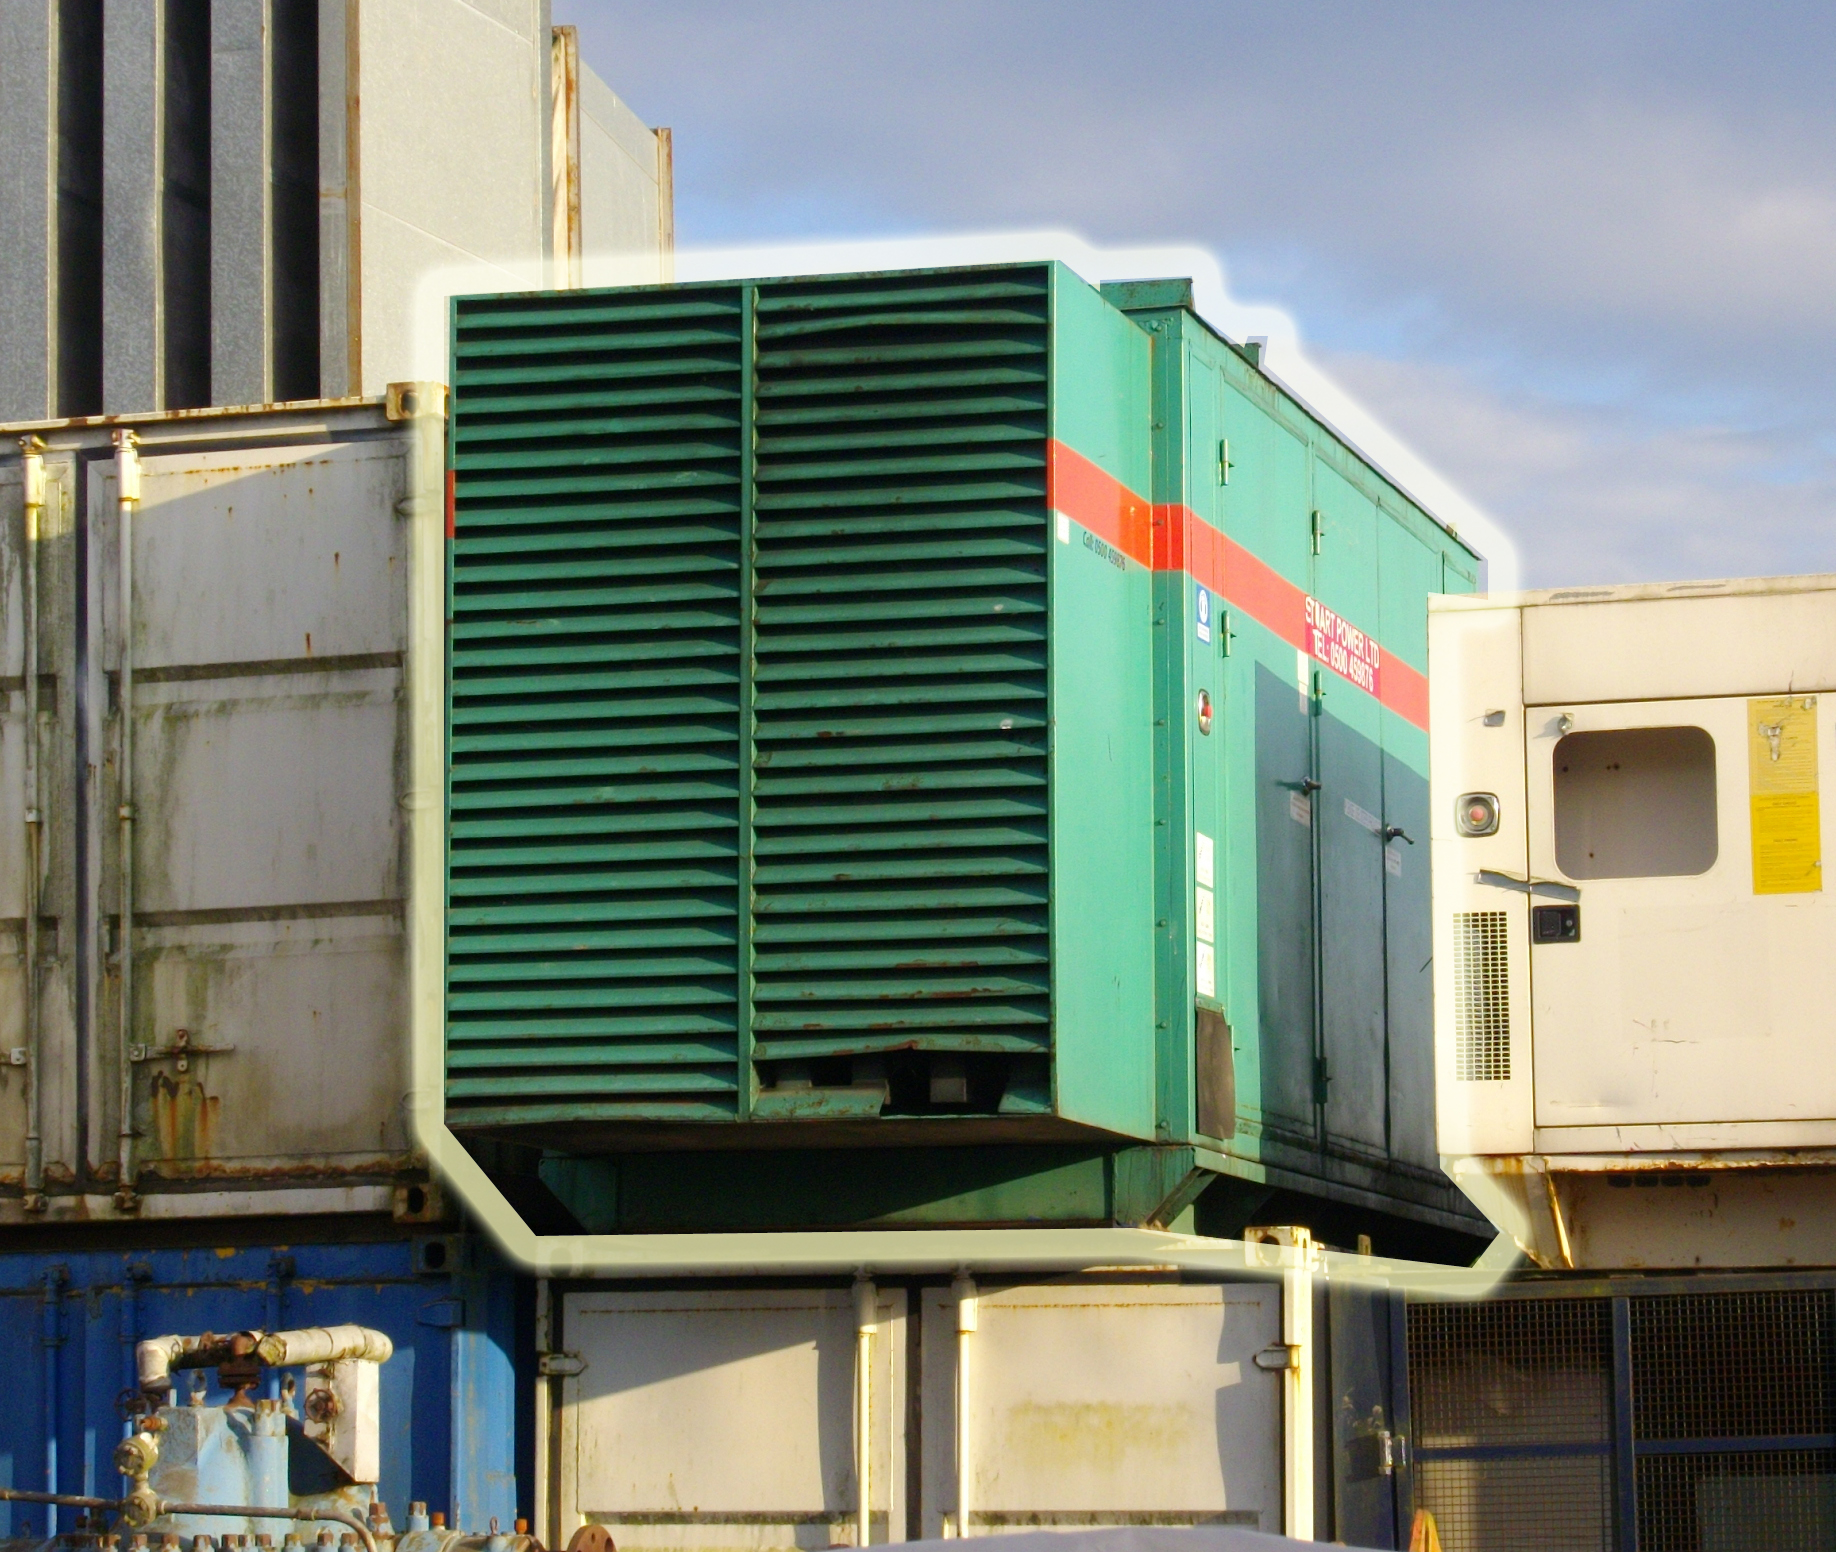 Blue 750kVA 4 door generator enclosure